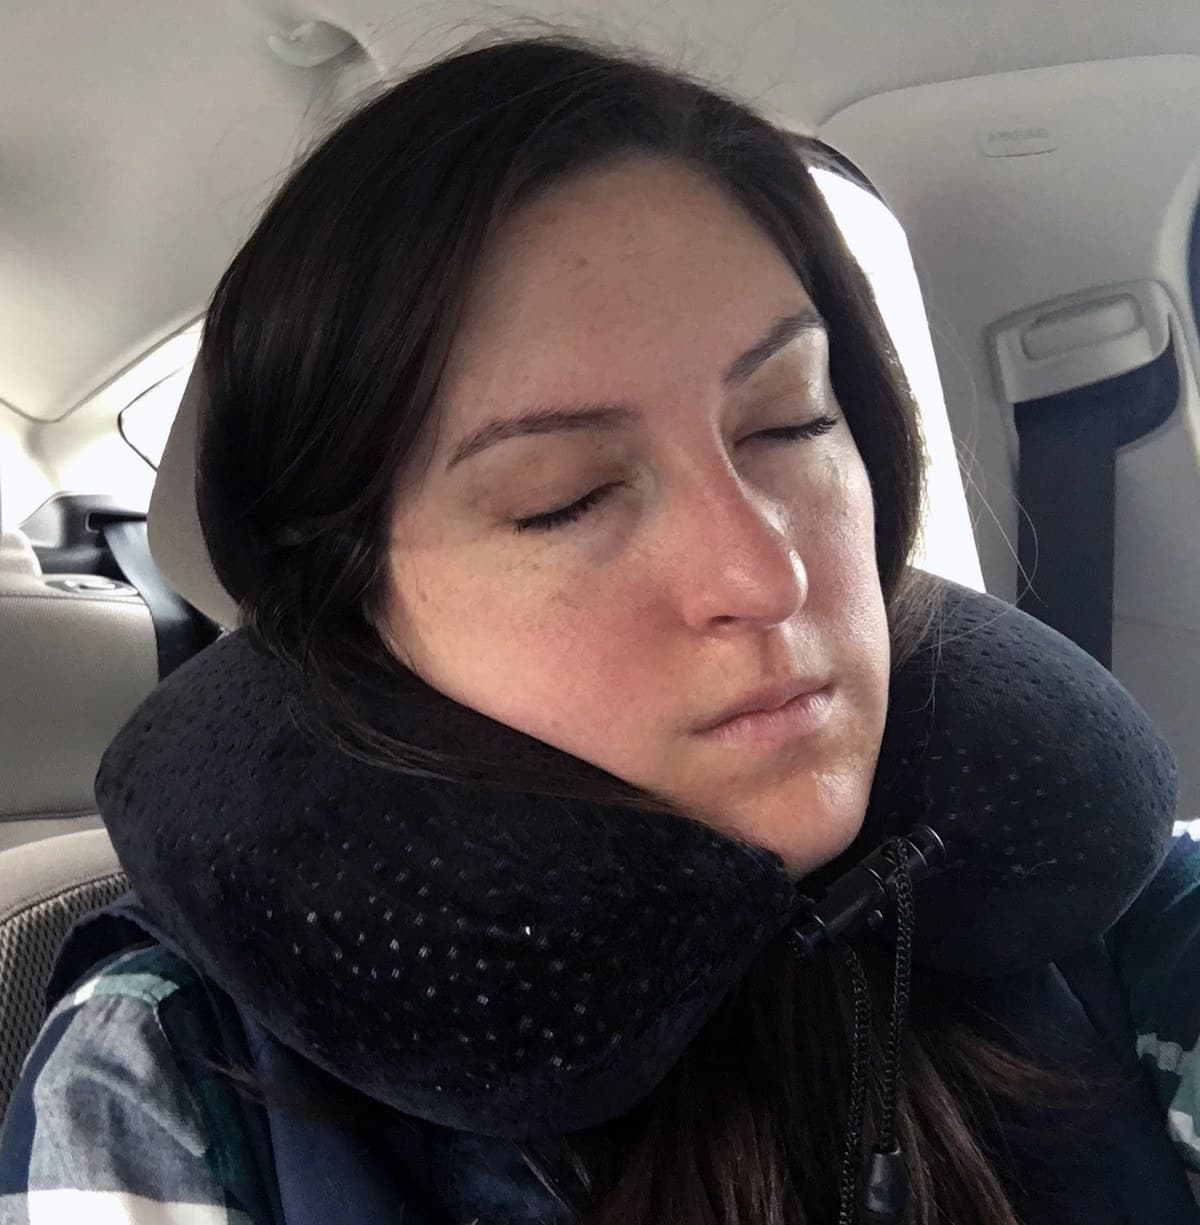 Aeris Memory Foam Travel Pillow Review